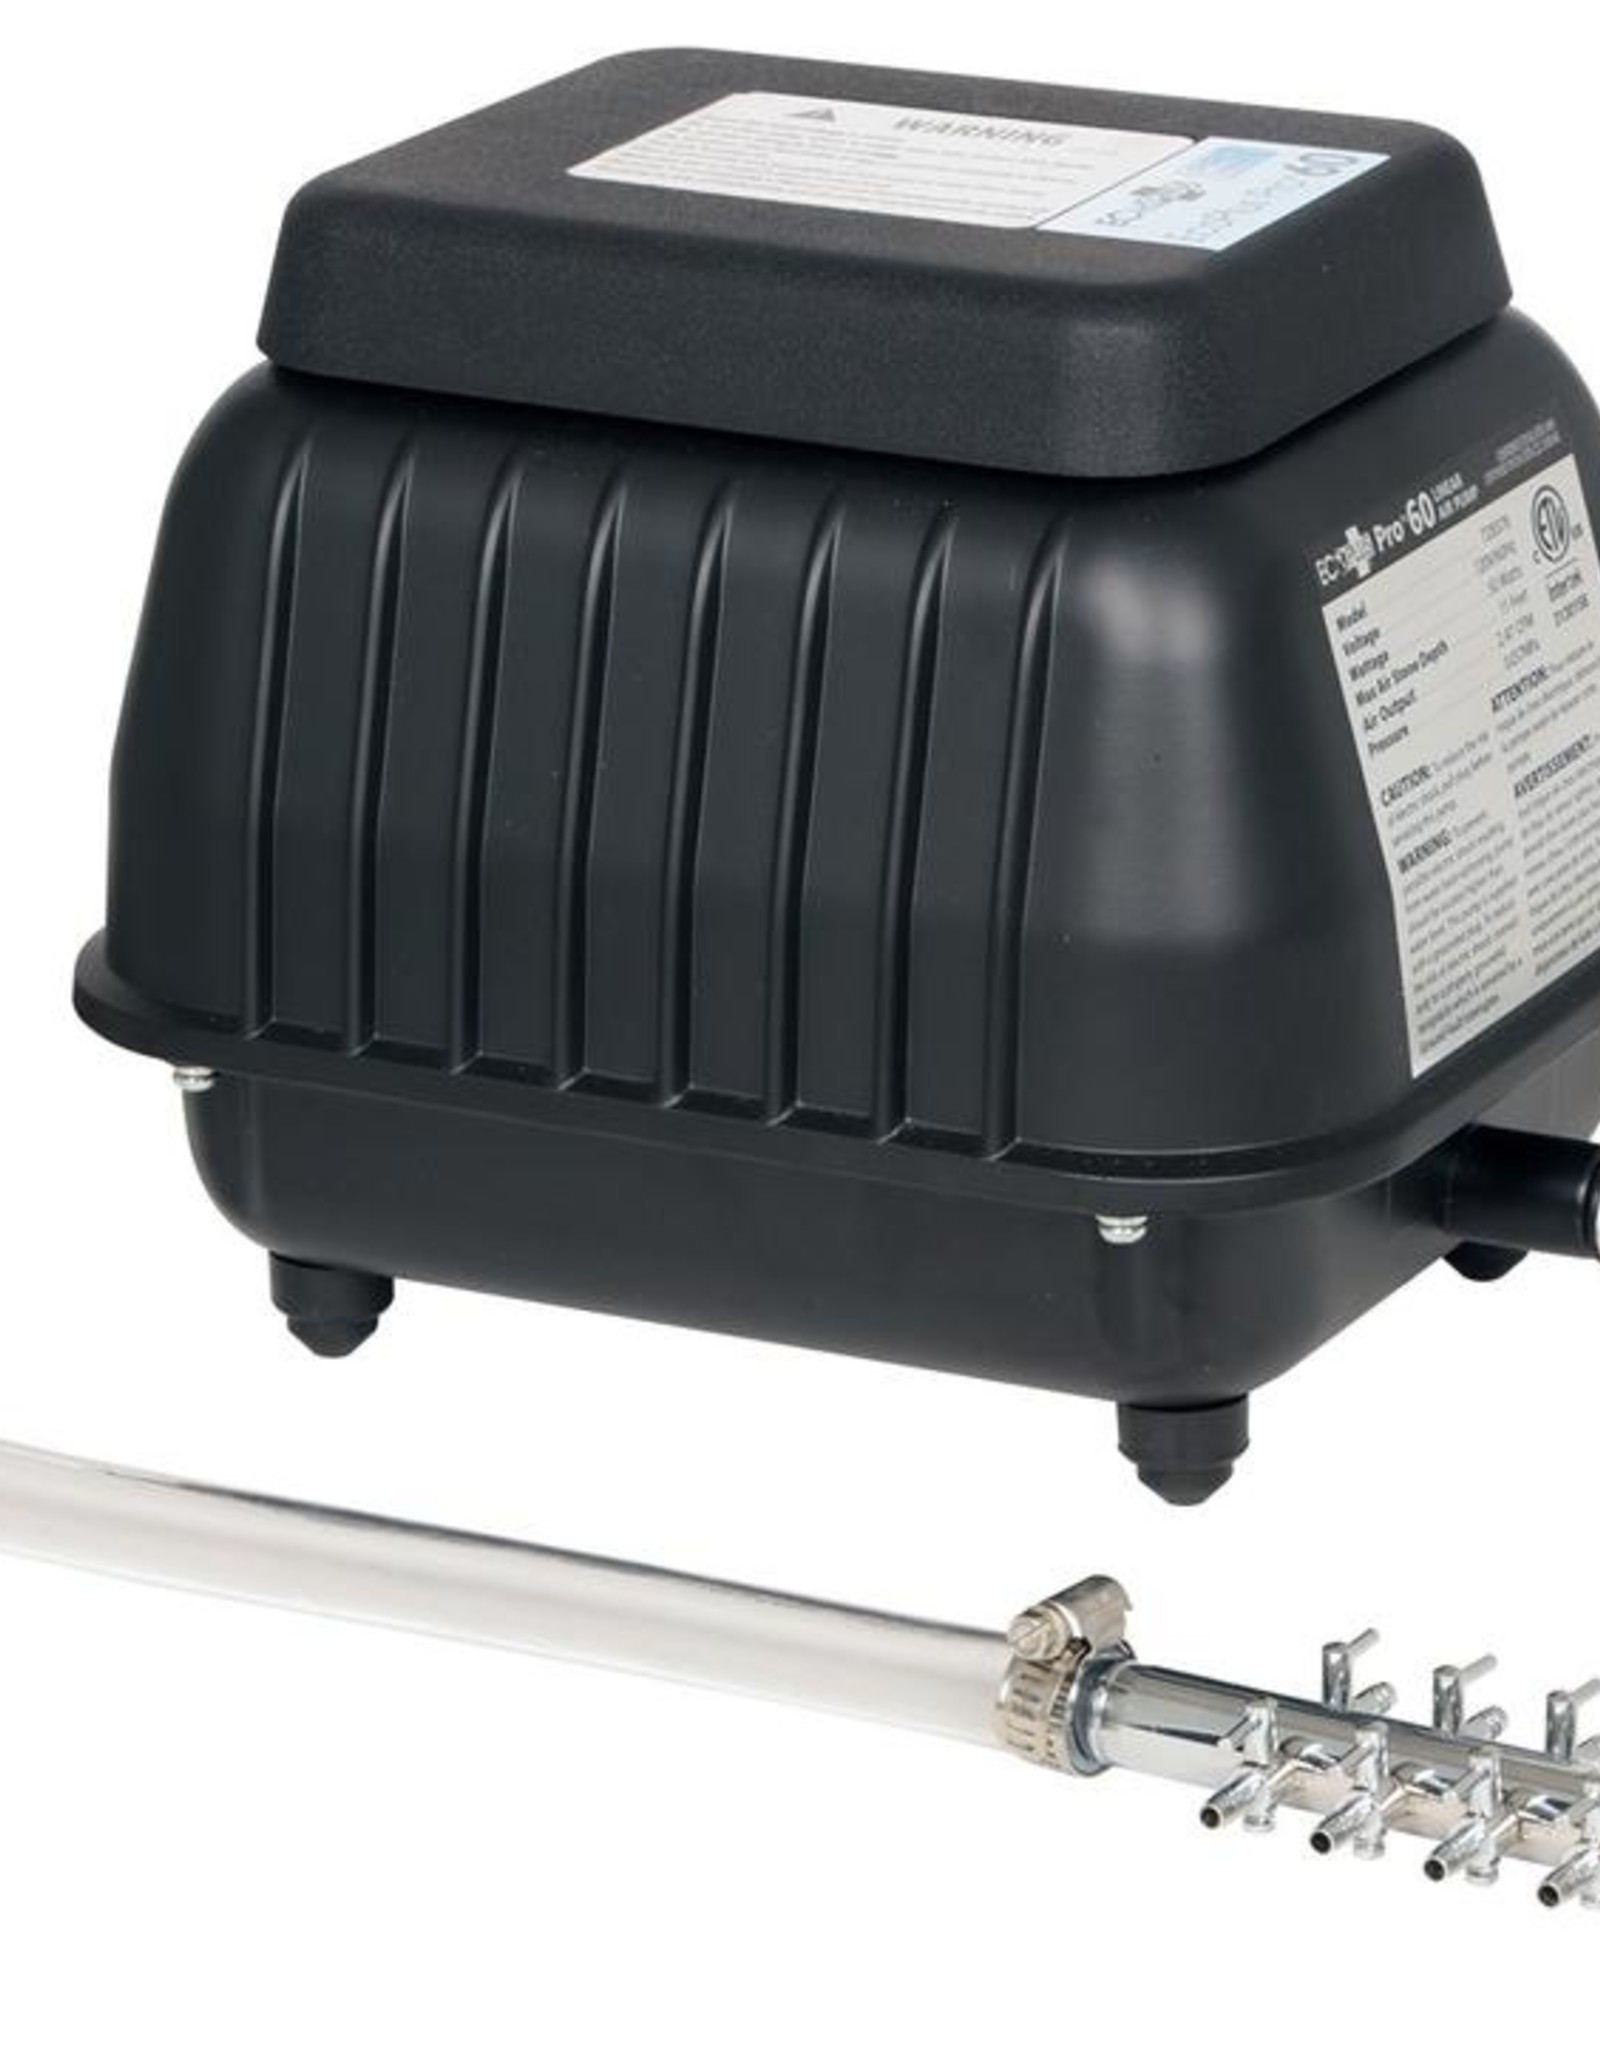 ECOPLUS EcoPlus® Pro Linear Air Pumps are commonly used to provide oxygen in aquariums, fish farms, hydroponic systems and more. These air pumps are designed to minimize noise, heat and vibration in environments where aeration is needed. This product requires min